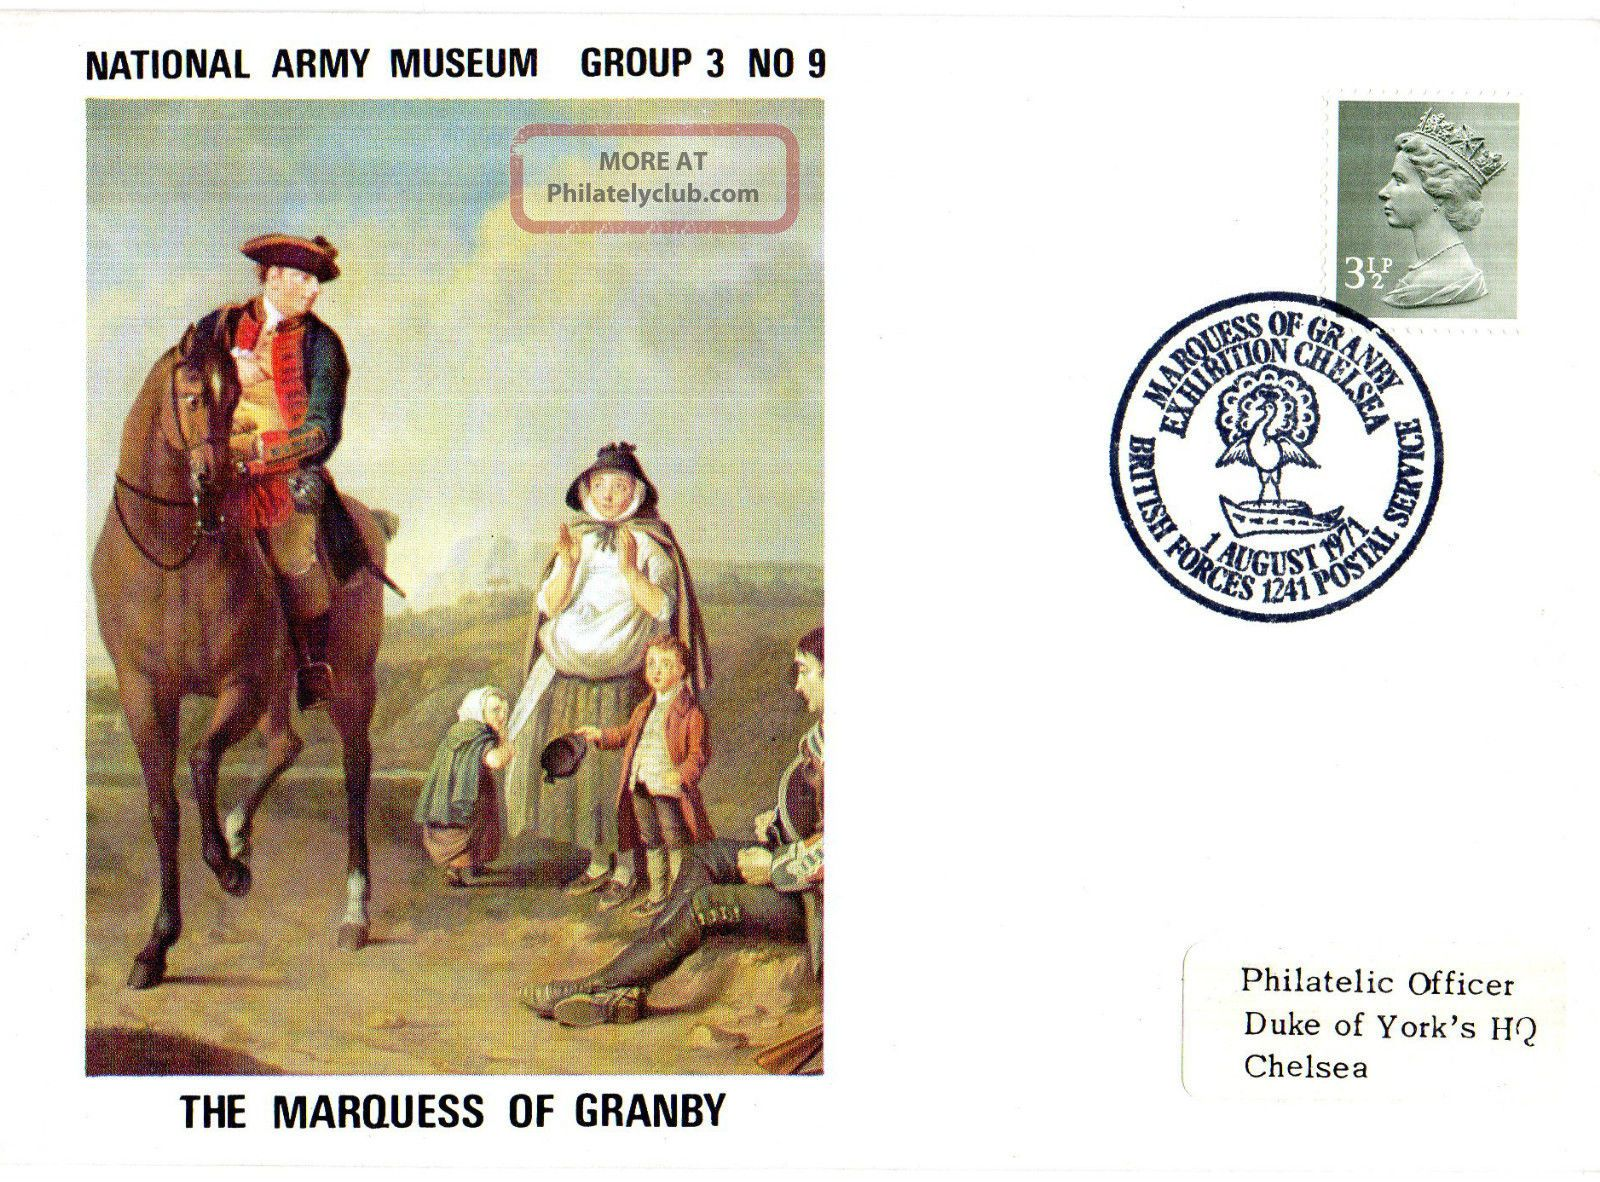 1971 Marquess Of Granby 3/9 Army Museum Commemorative Cover Shs Topical Stamps photo